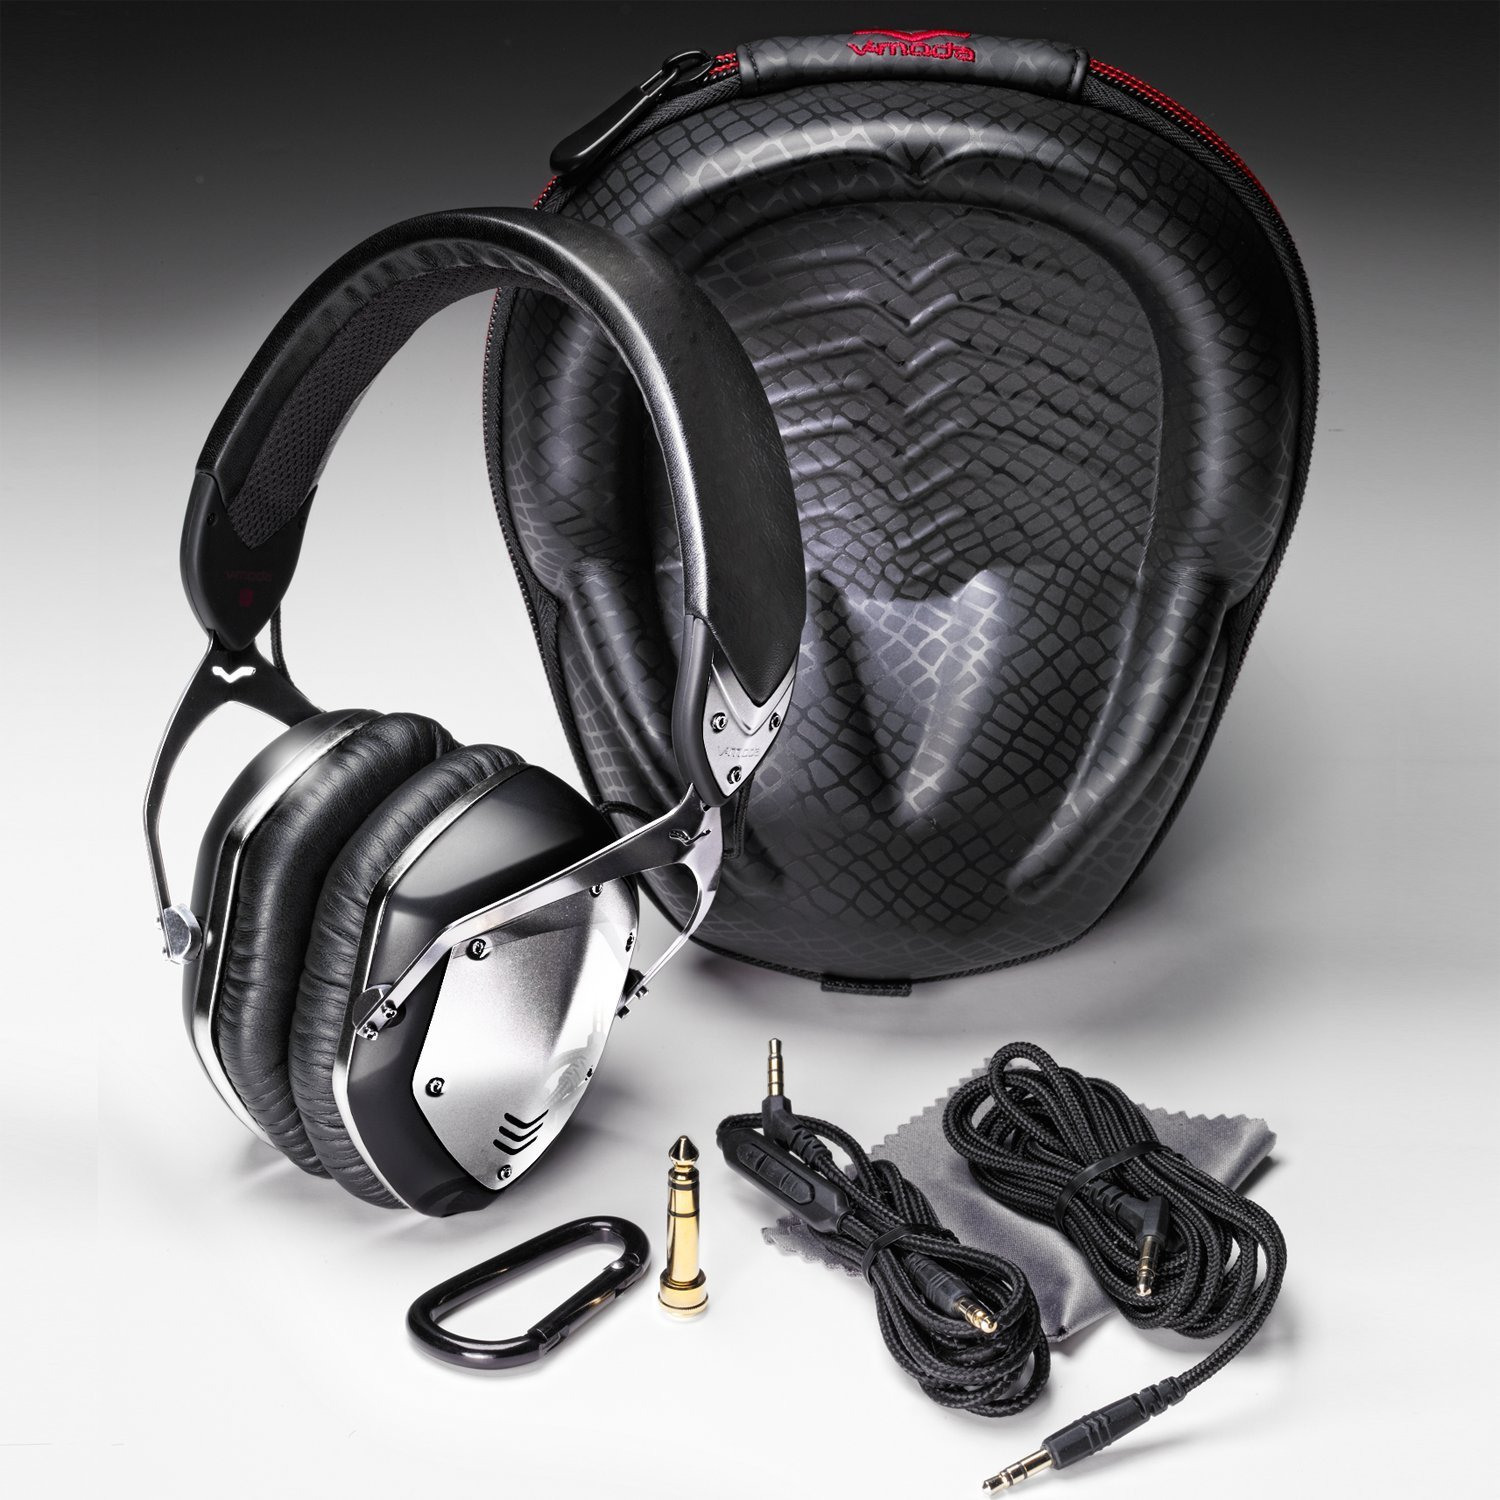 V-MODA Headphones